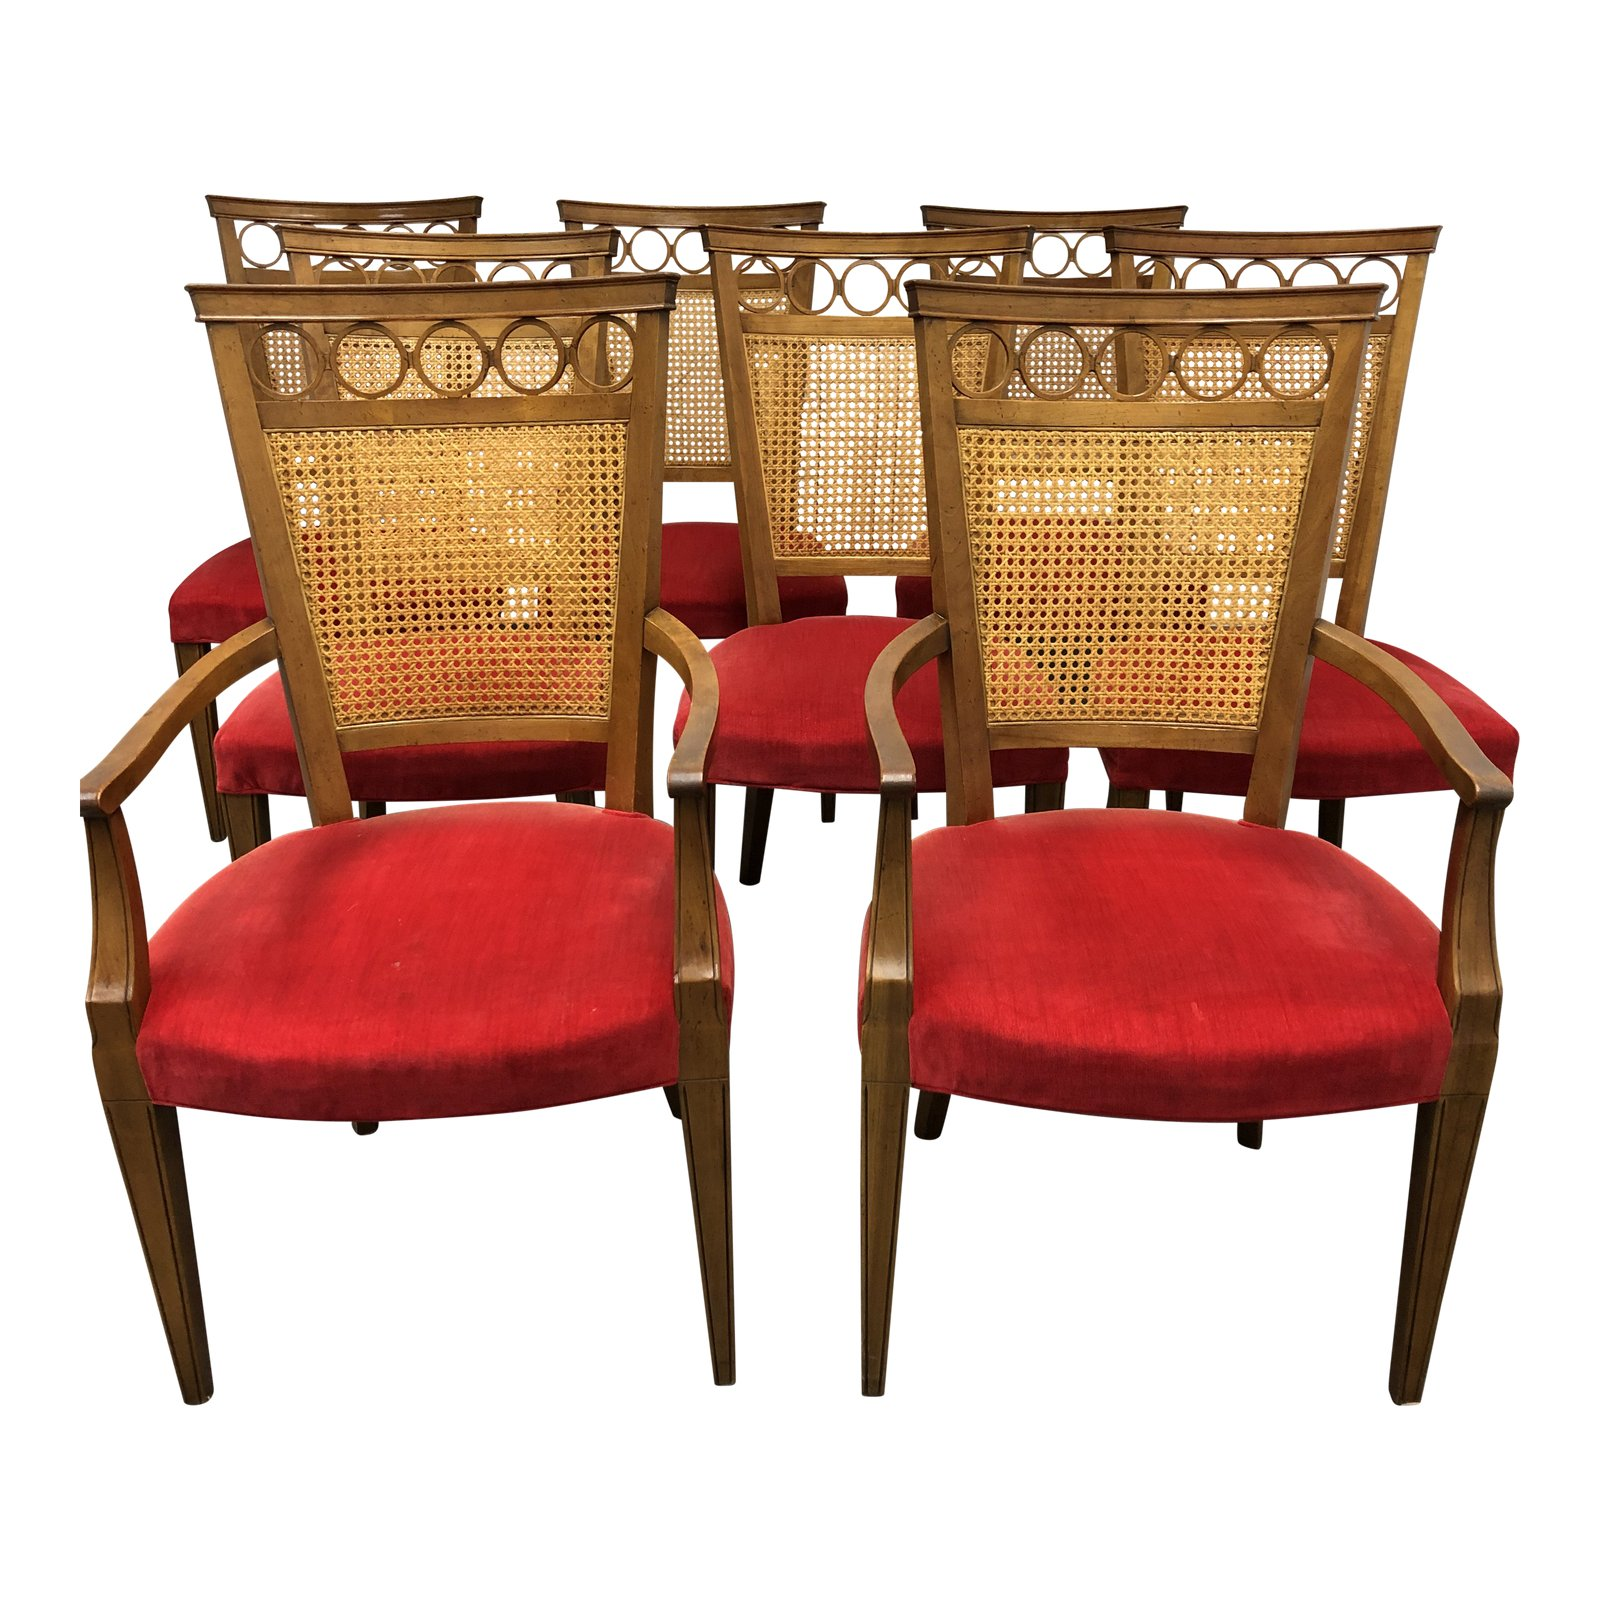 Peachy Set Of 8 Baker Furniture Caned Back Dining Chairs Design Ocoug Best Dining Table And Chair Ideas Images Ocougorg